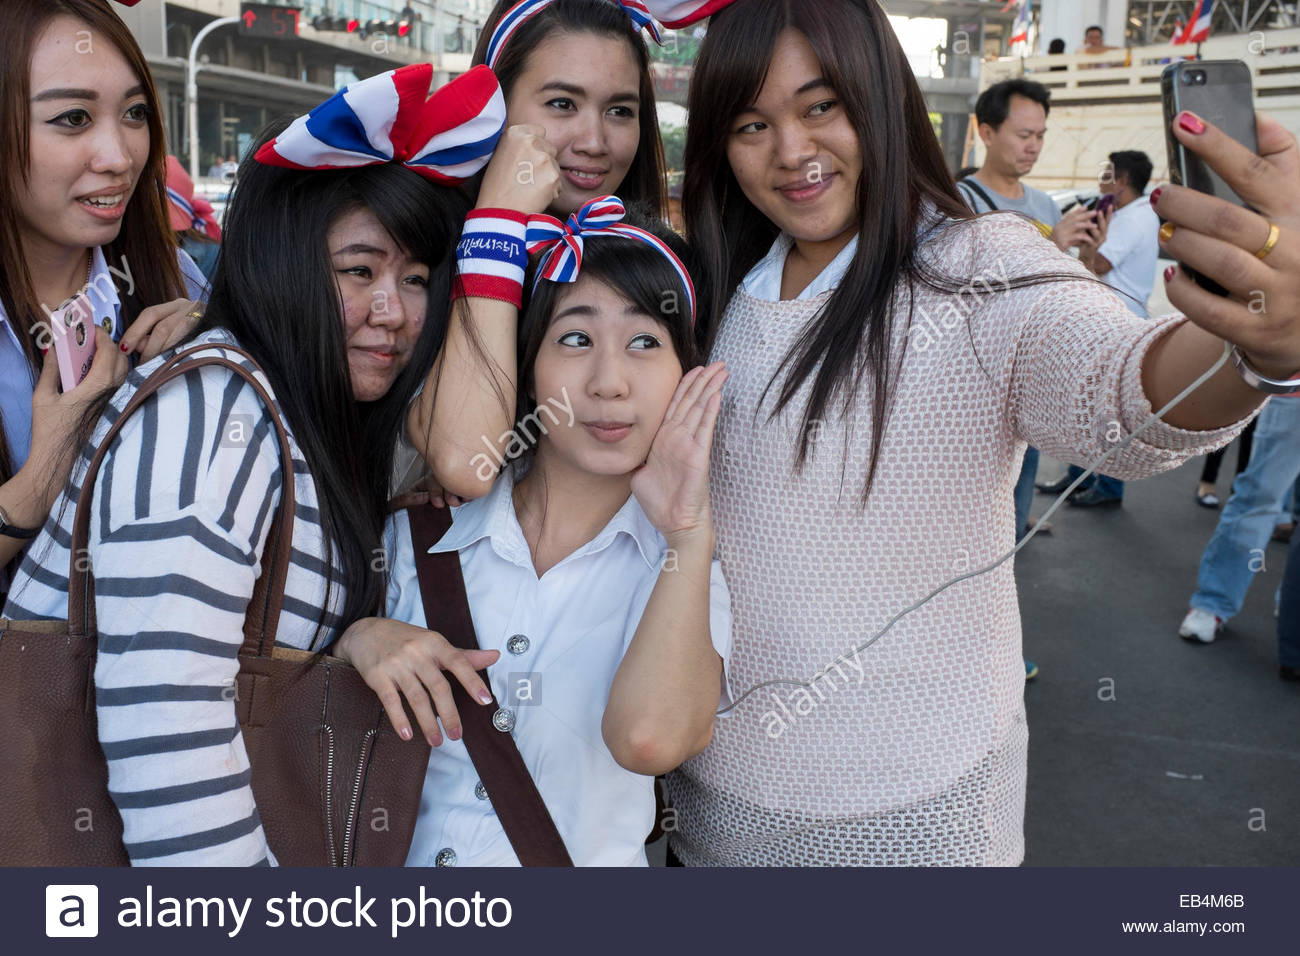 Young female anti-government demonstrators taking a group self portrait. - Stock Image